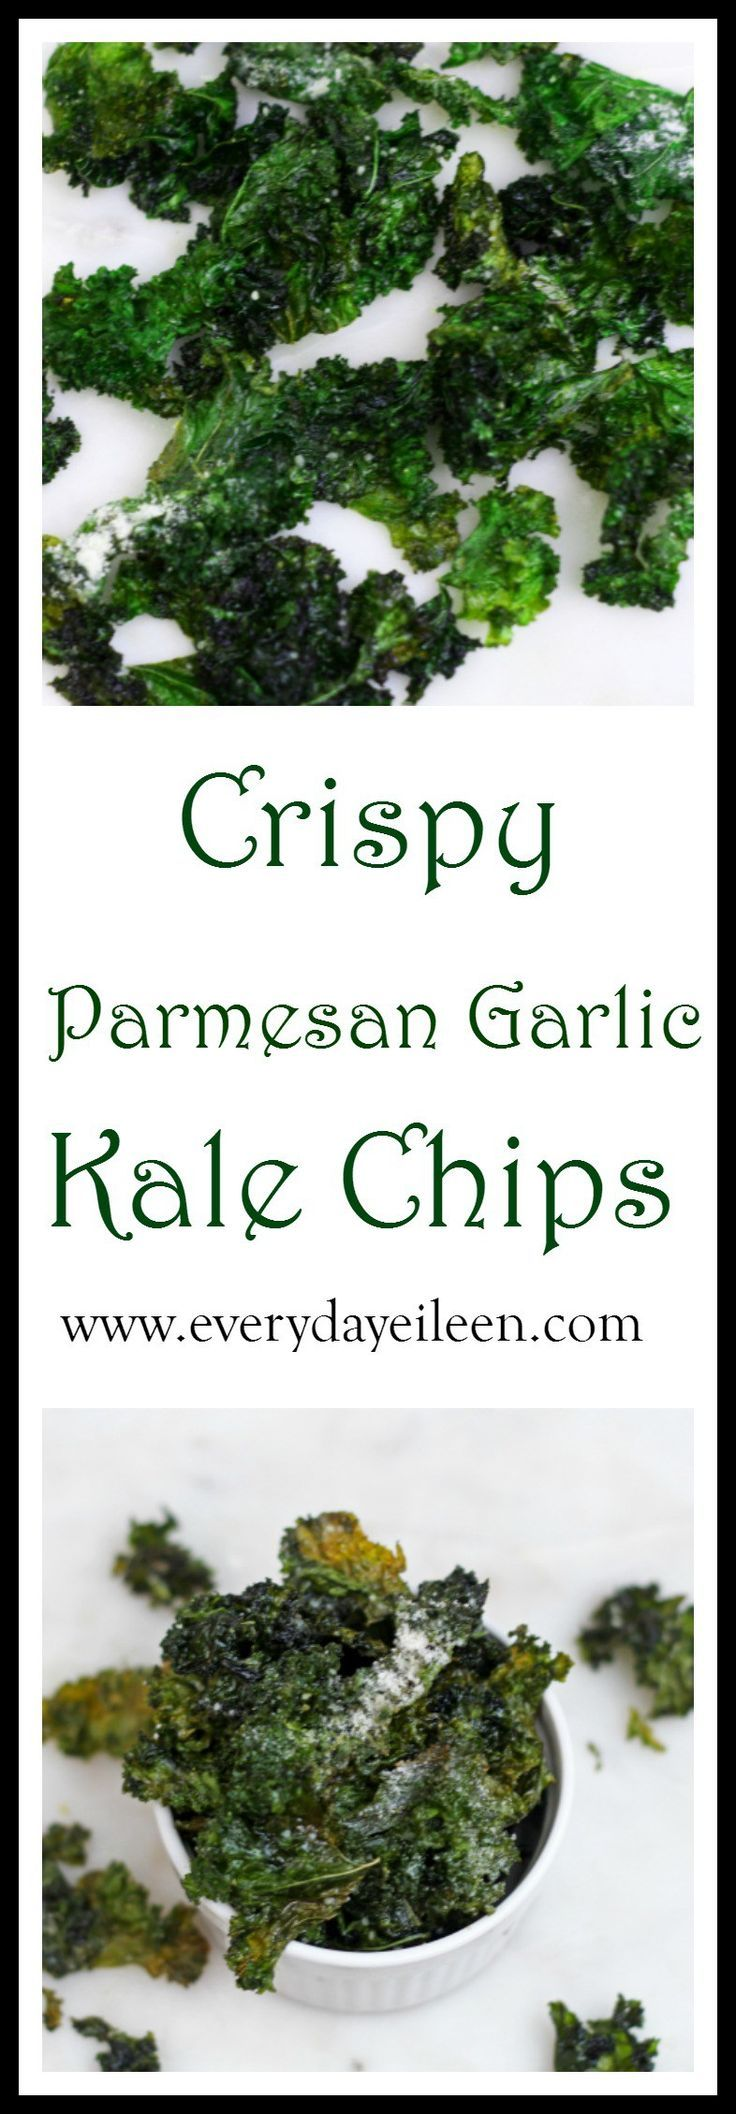 Crispy Roasted Parmesan Garlic Chips! low-fat, gluten-free, delicious and filled with vitamins.  You won't want or need to stop at one chip!